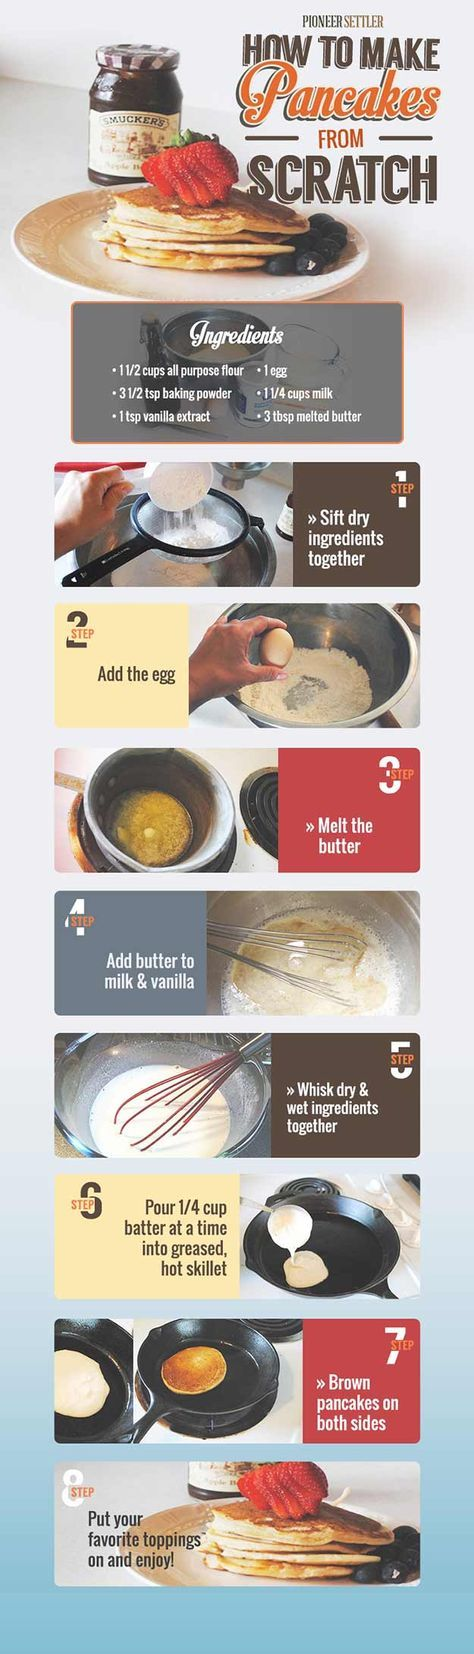 Homemade pancakes recipe from scratch. | http://pioneersettler.com/how-to-make-pancakes-from-scratch/